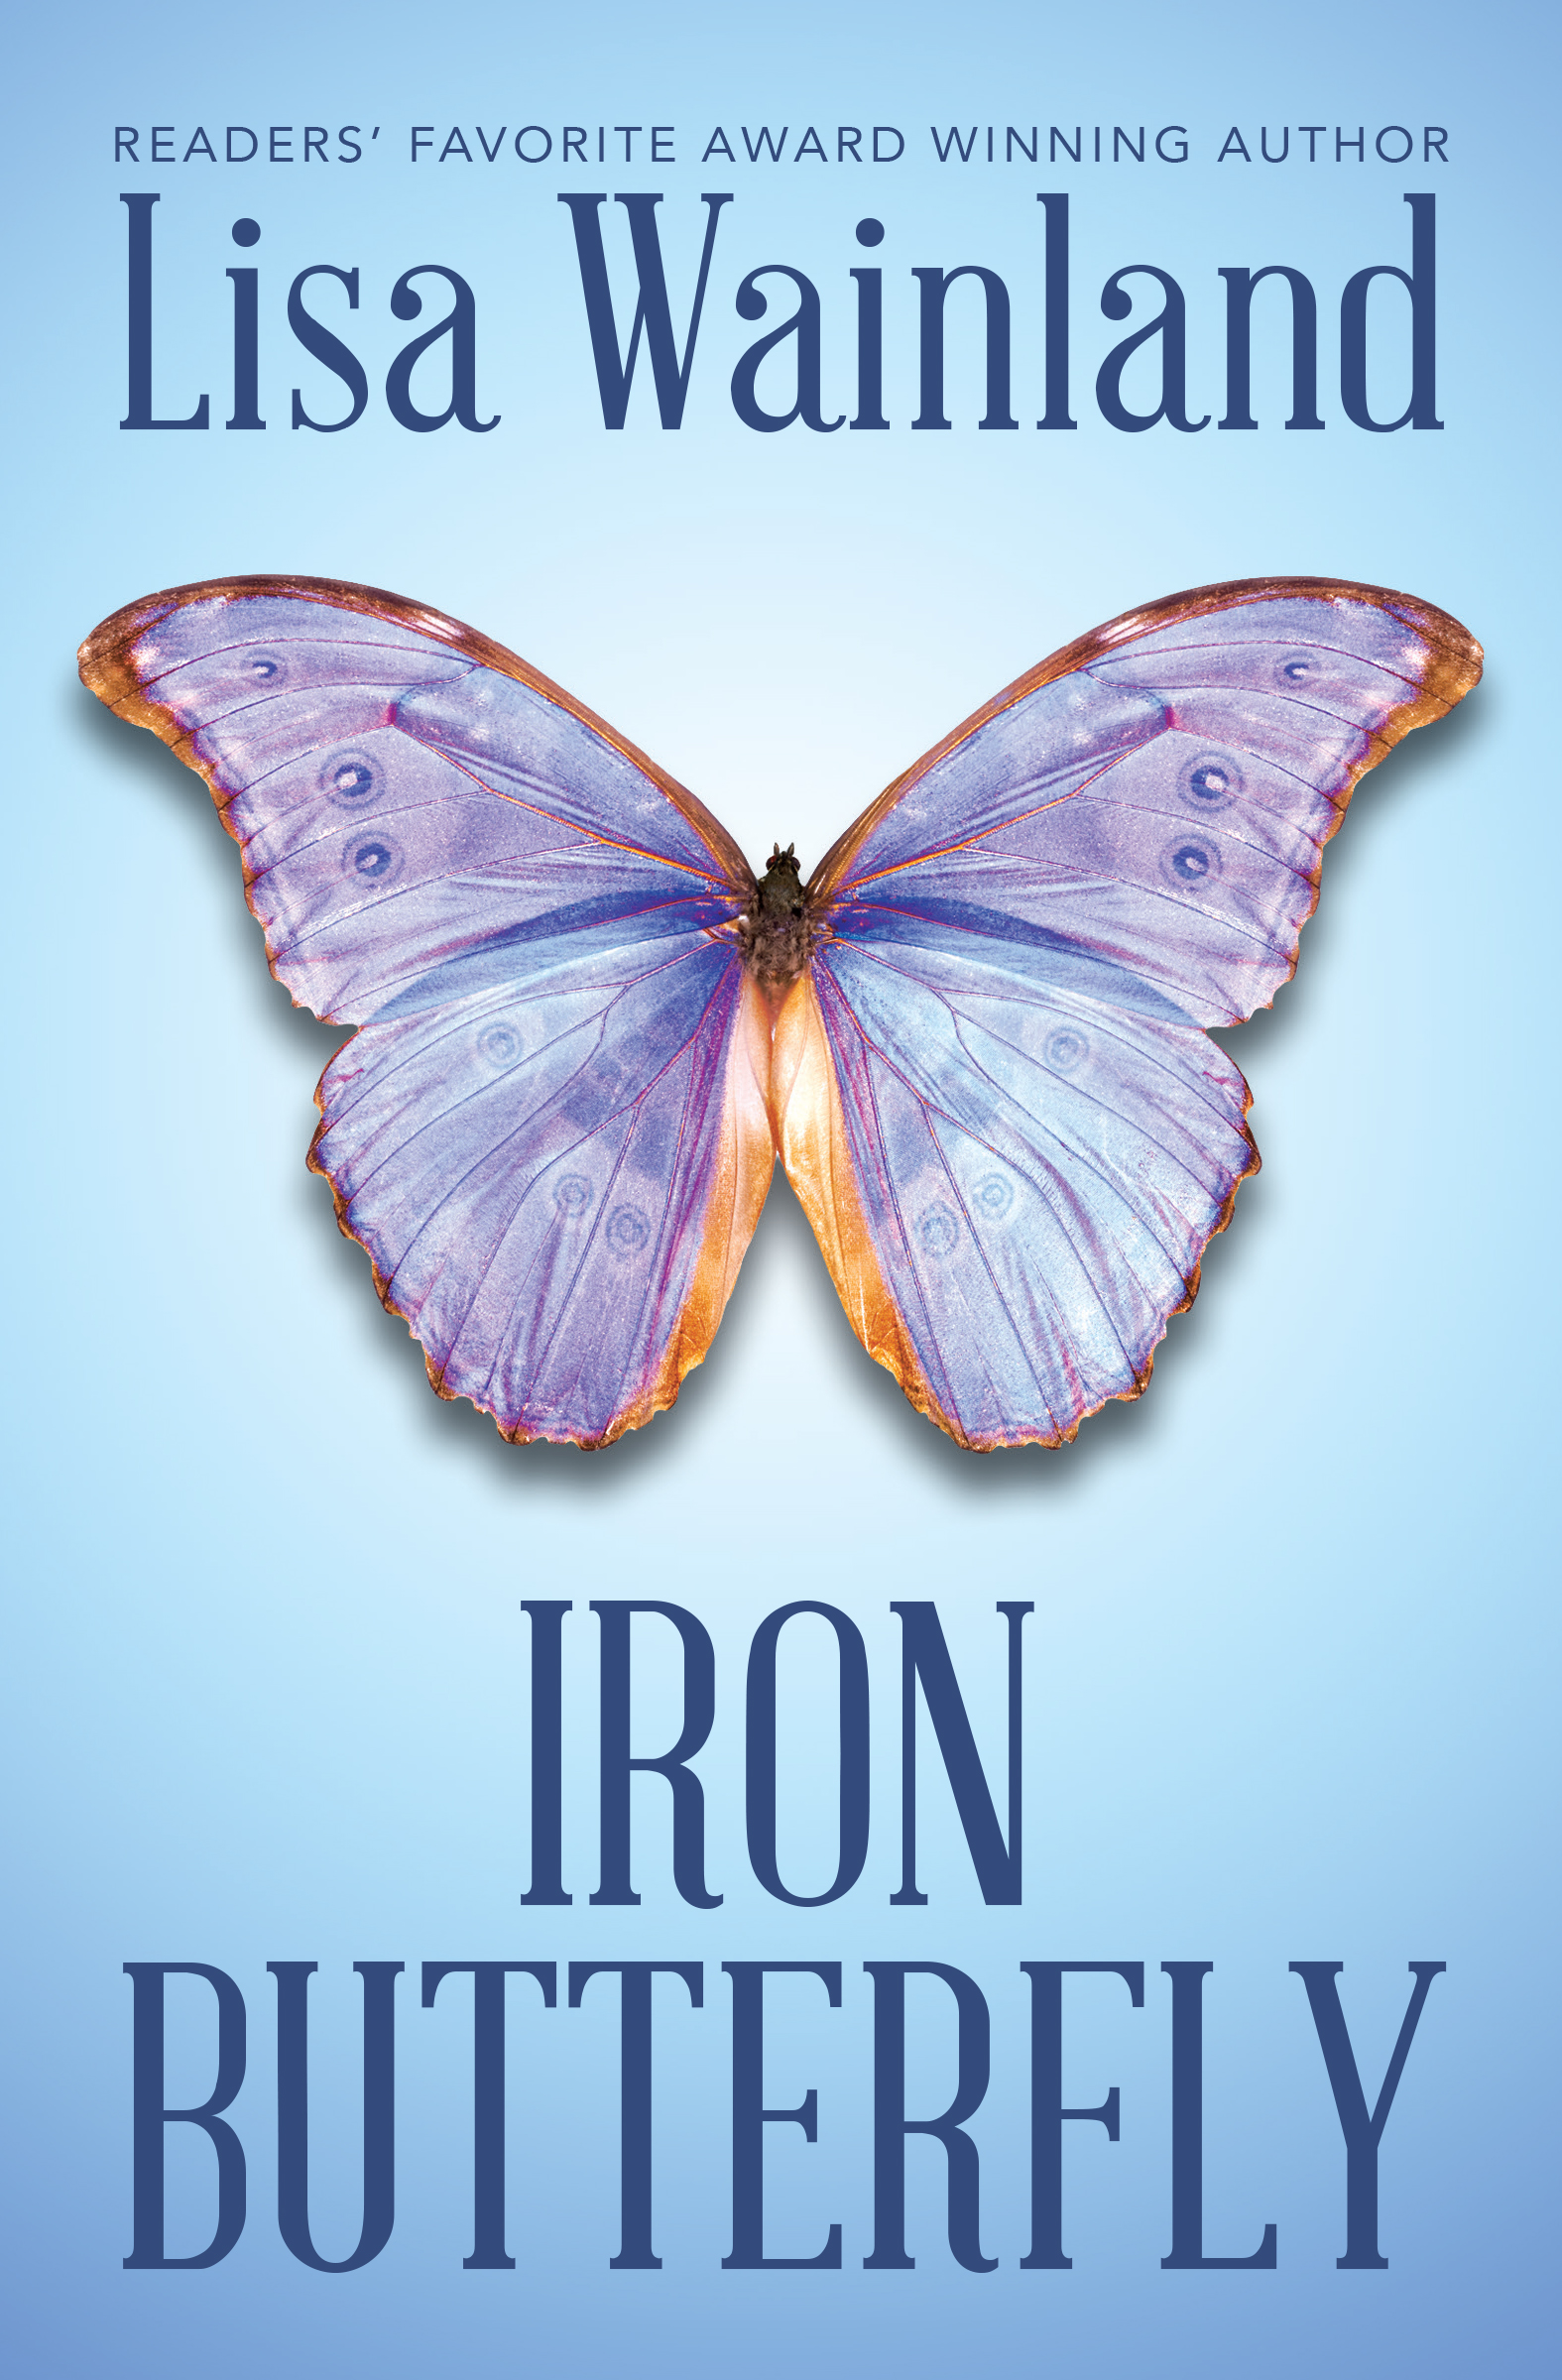 Iron Butterfly by Lisa Wainland cover